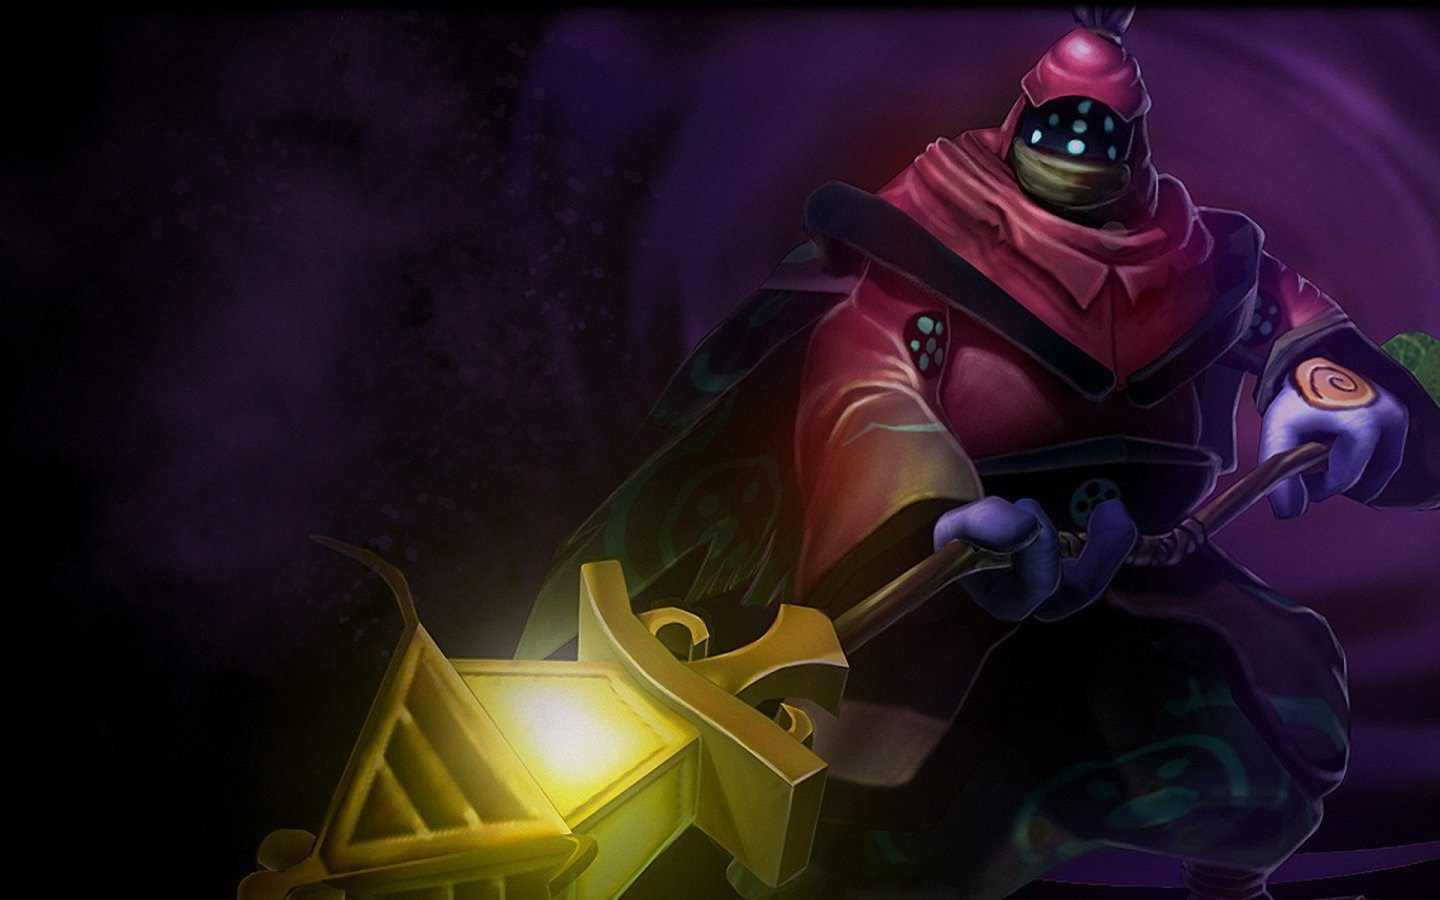 Jax League Of Legends Wallpaper 1440x900 25664